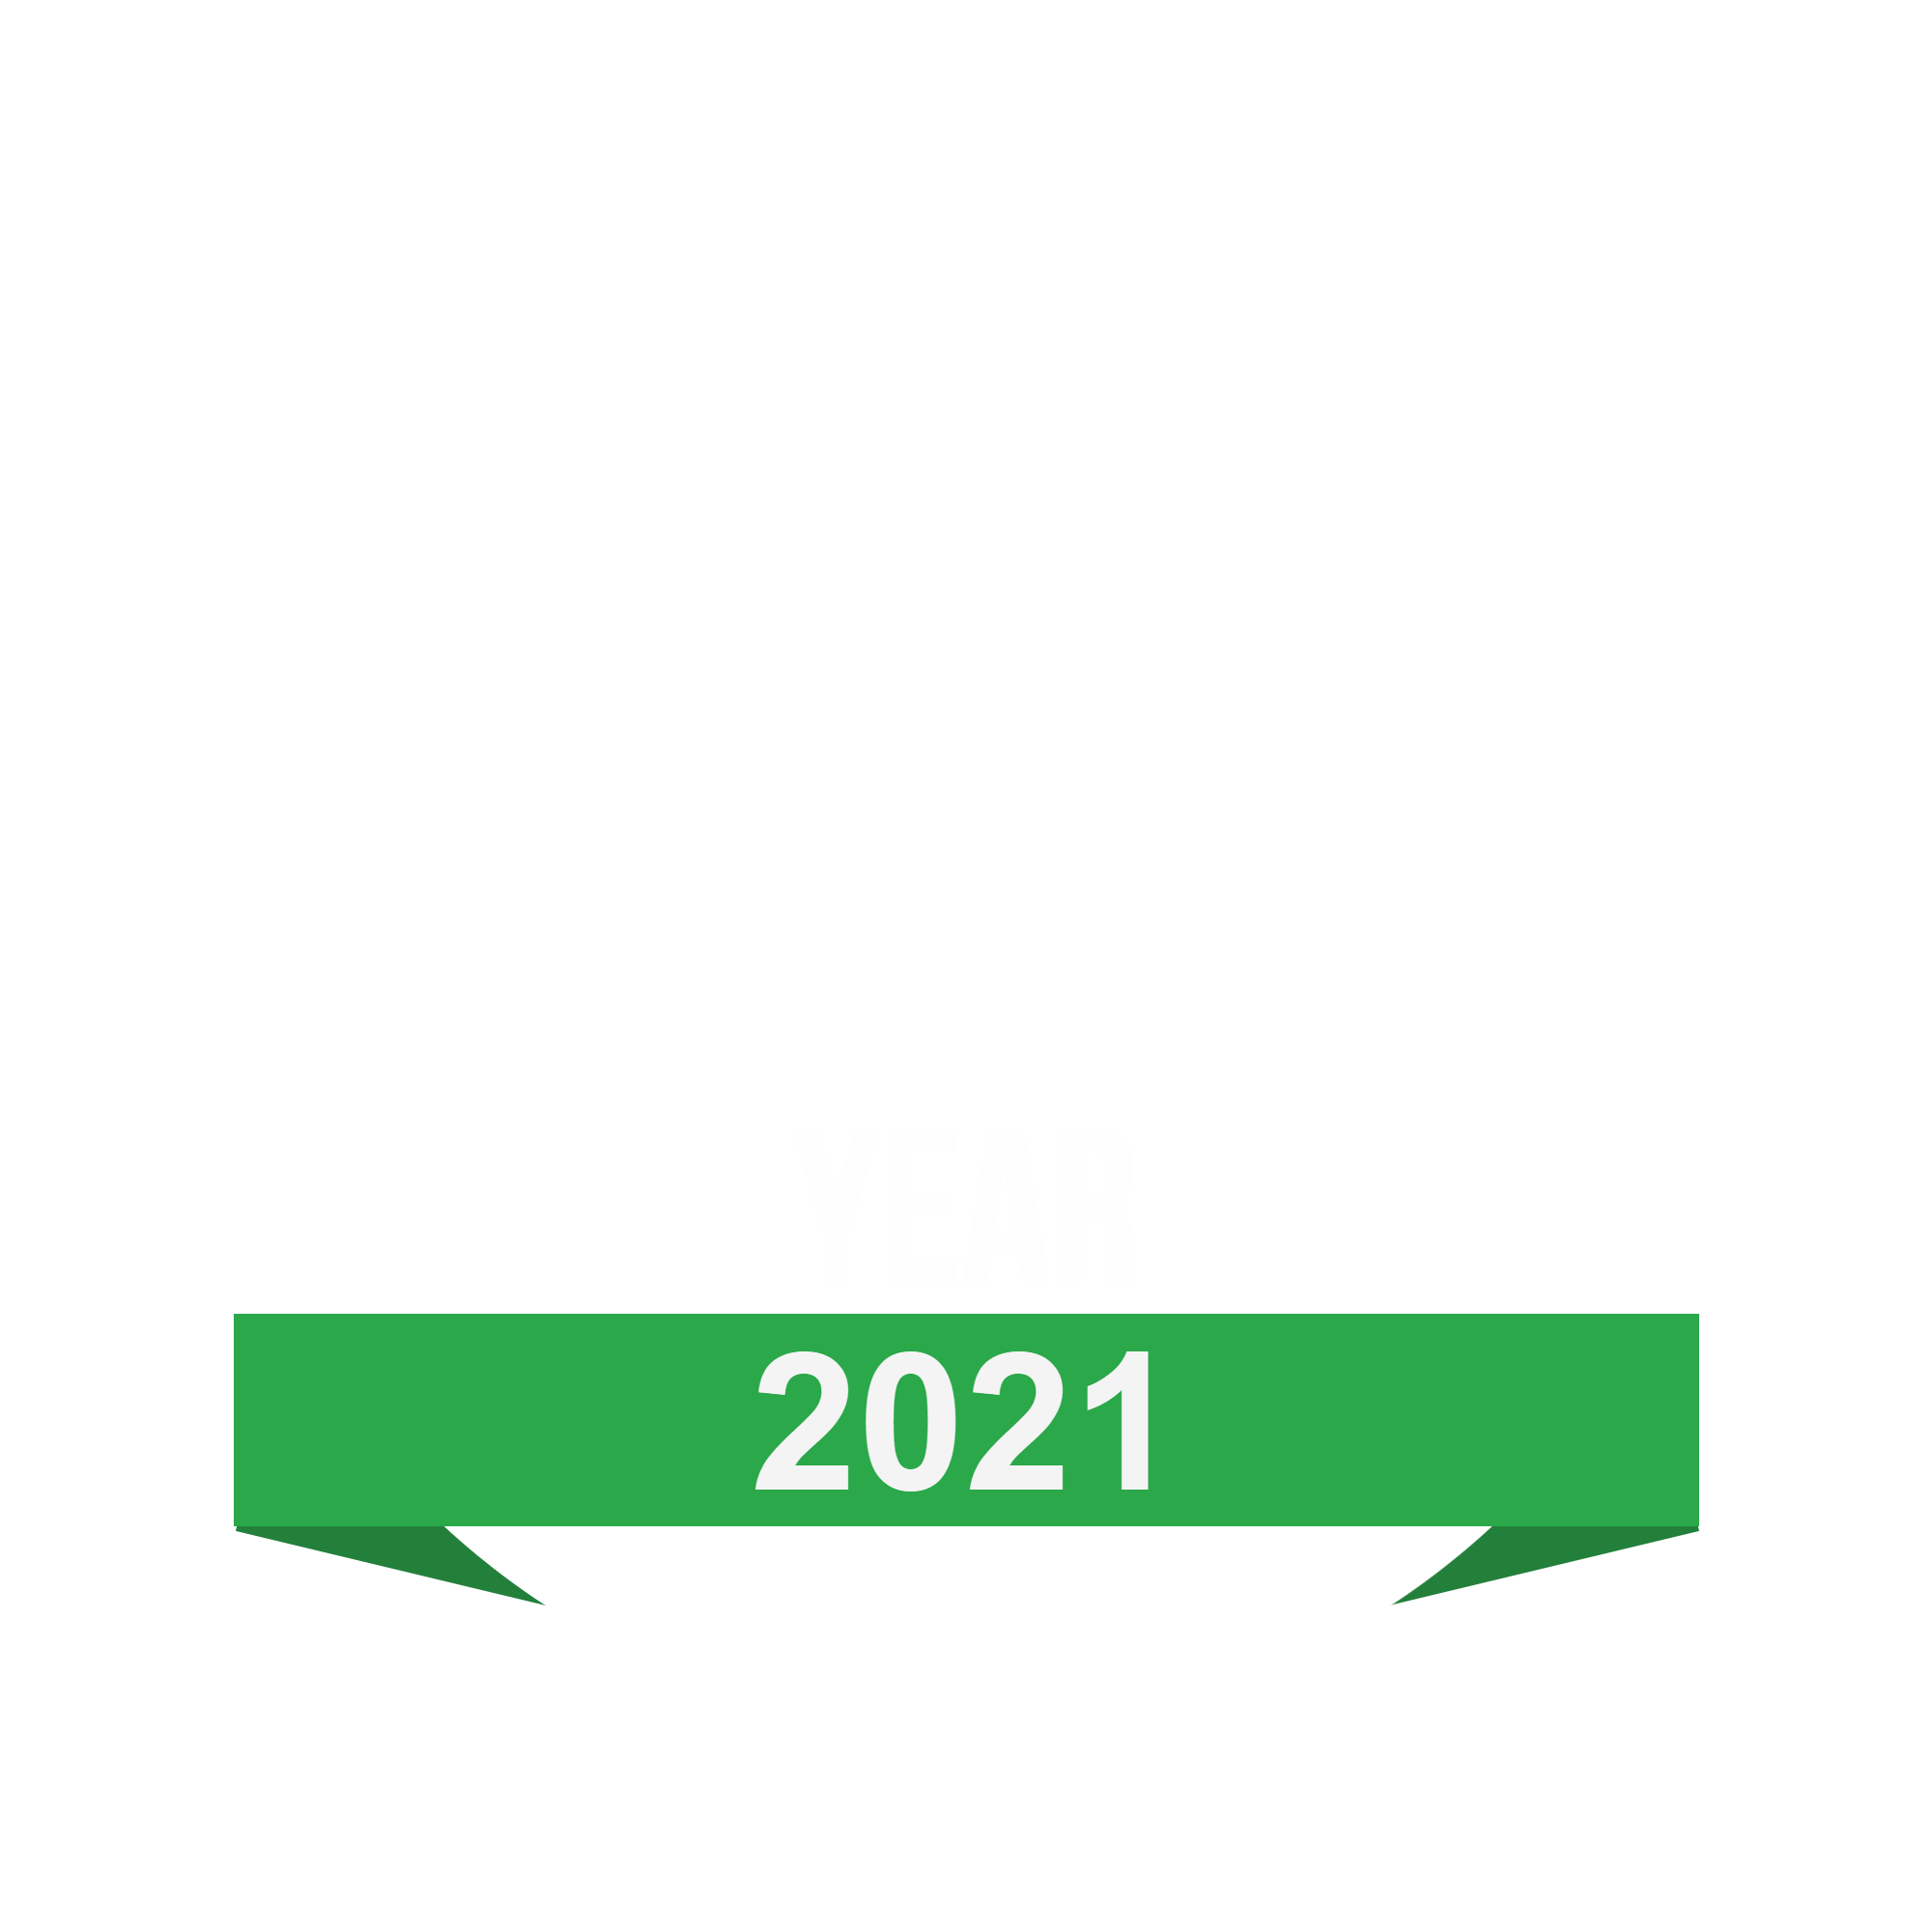 Nancy Nardin Top Sales Tool of The Year